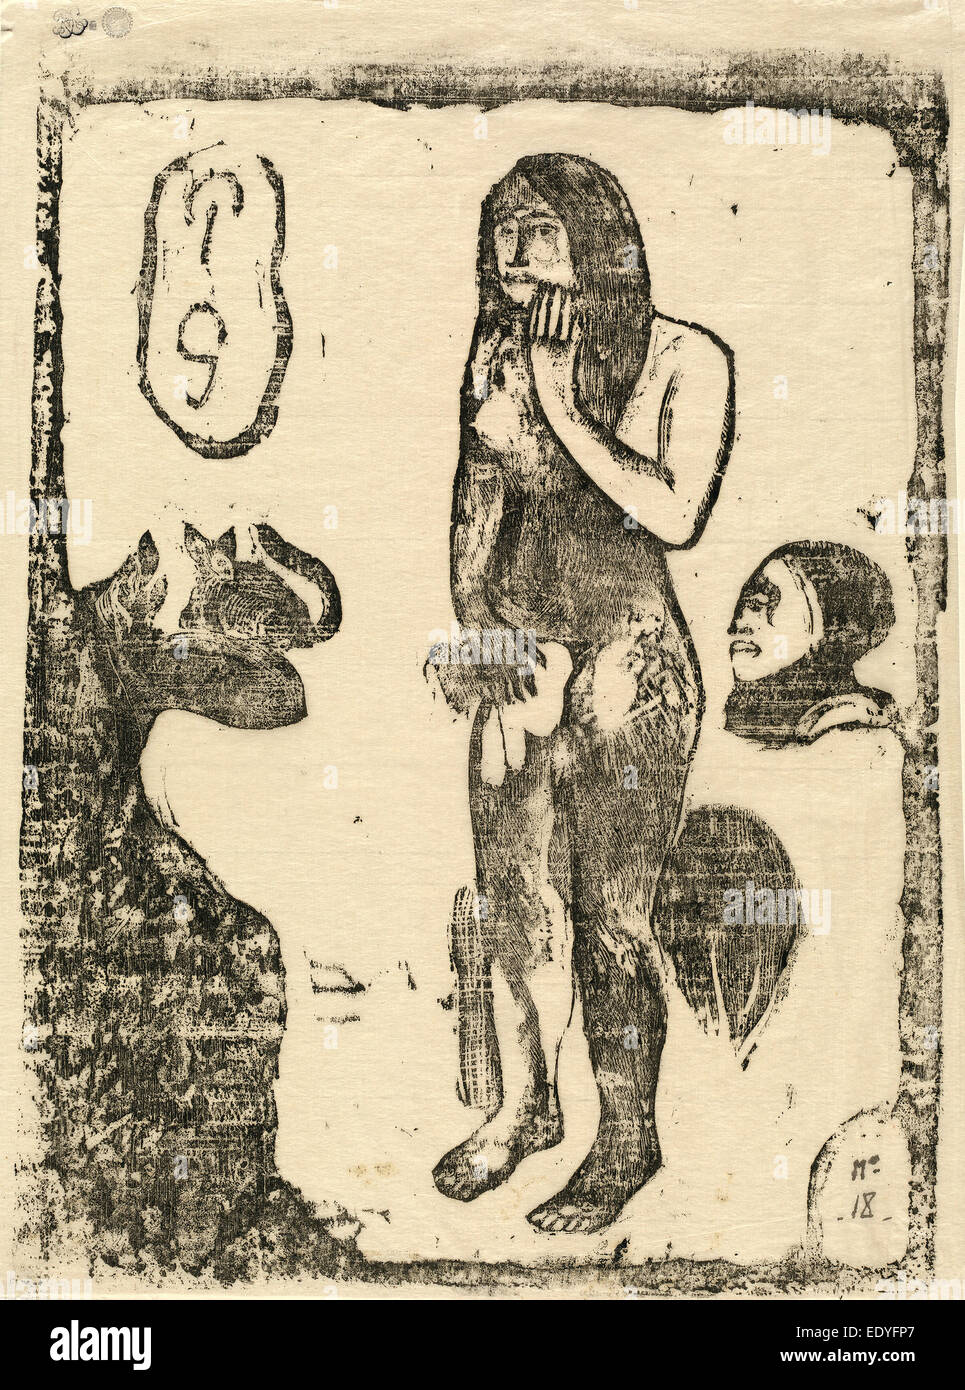 Paul Gauguin (French, 1848 - 1903), Eve, in or after 1895, woodcut on japan paper - Stock Image